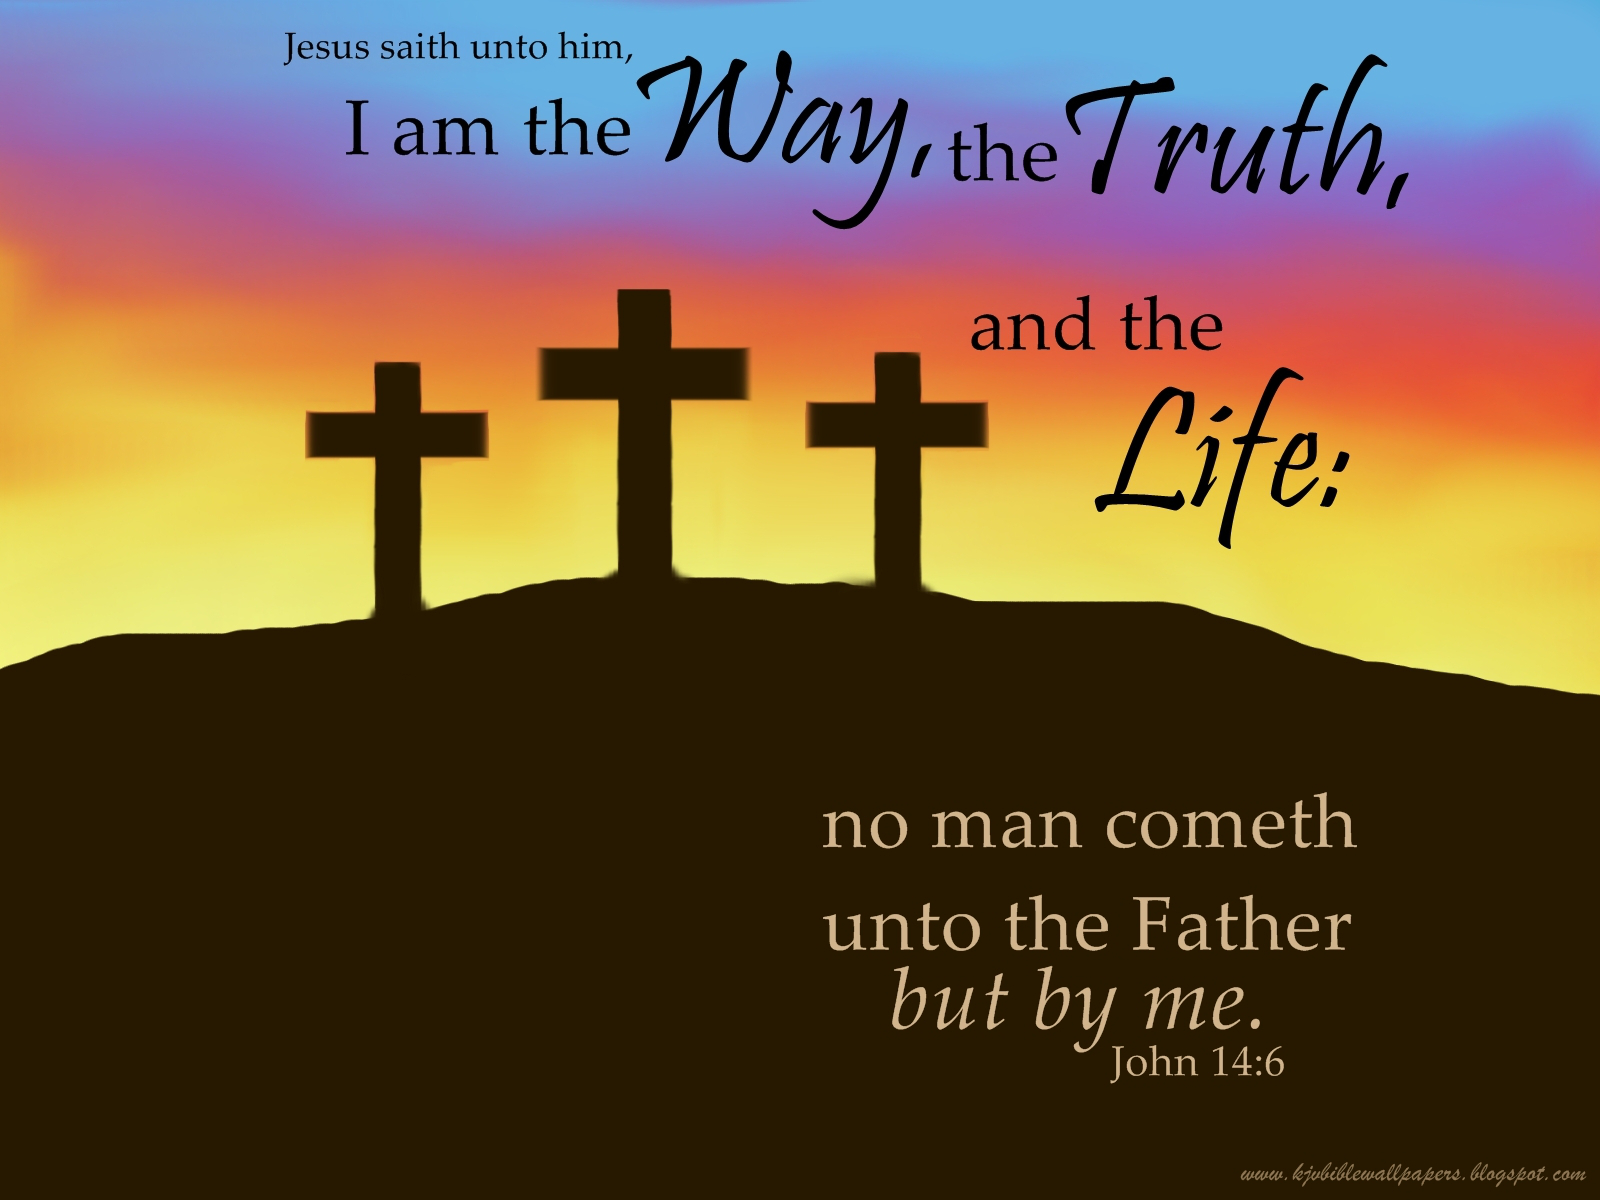 Free Desktop Wallpaper Scripture Fall Do You Know The Way The Truth And The Life